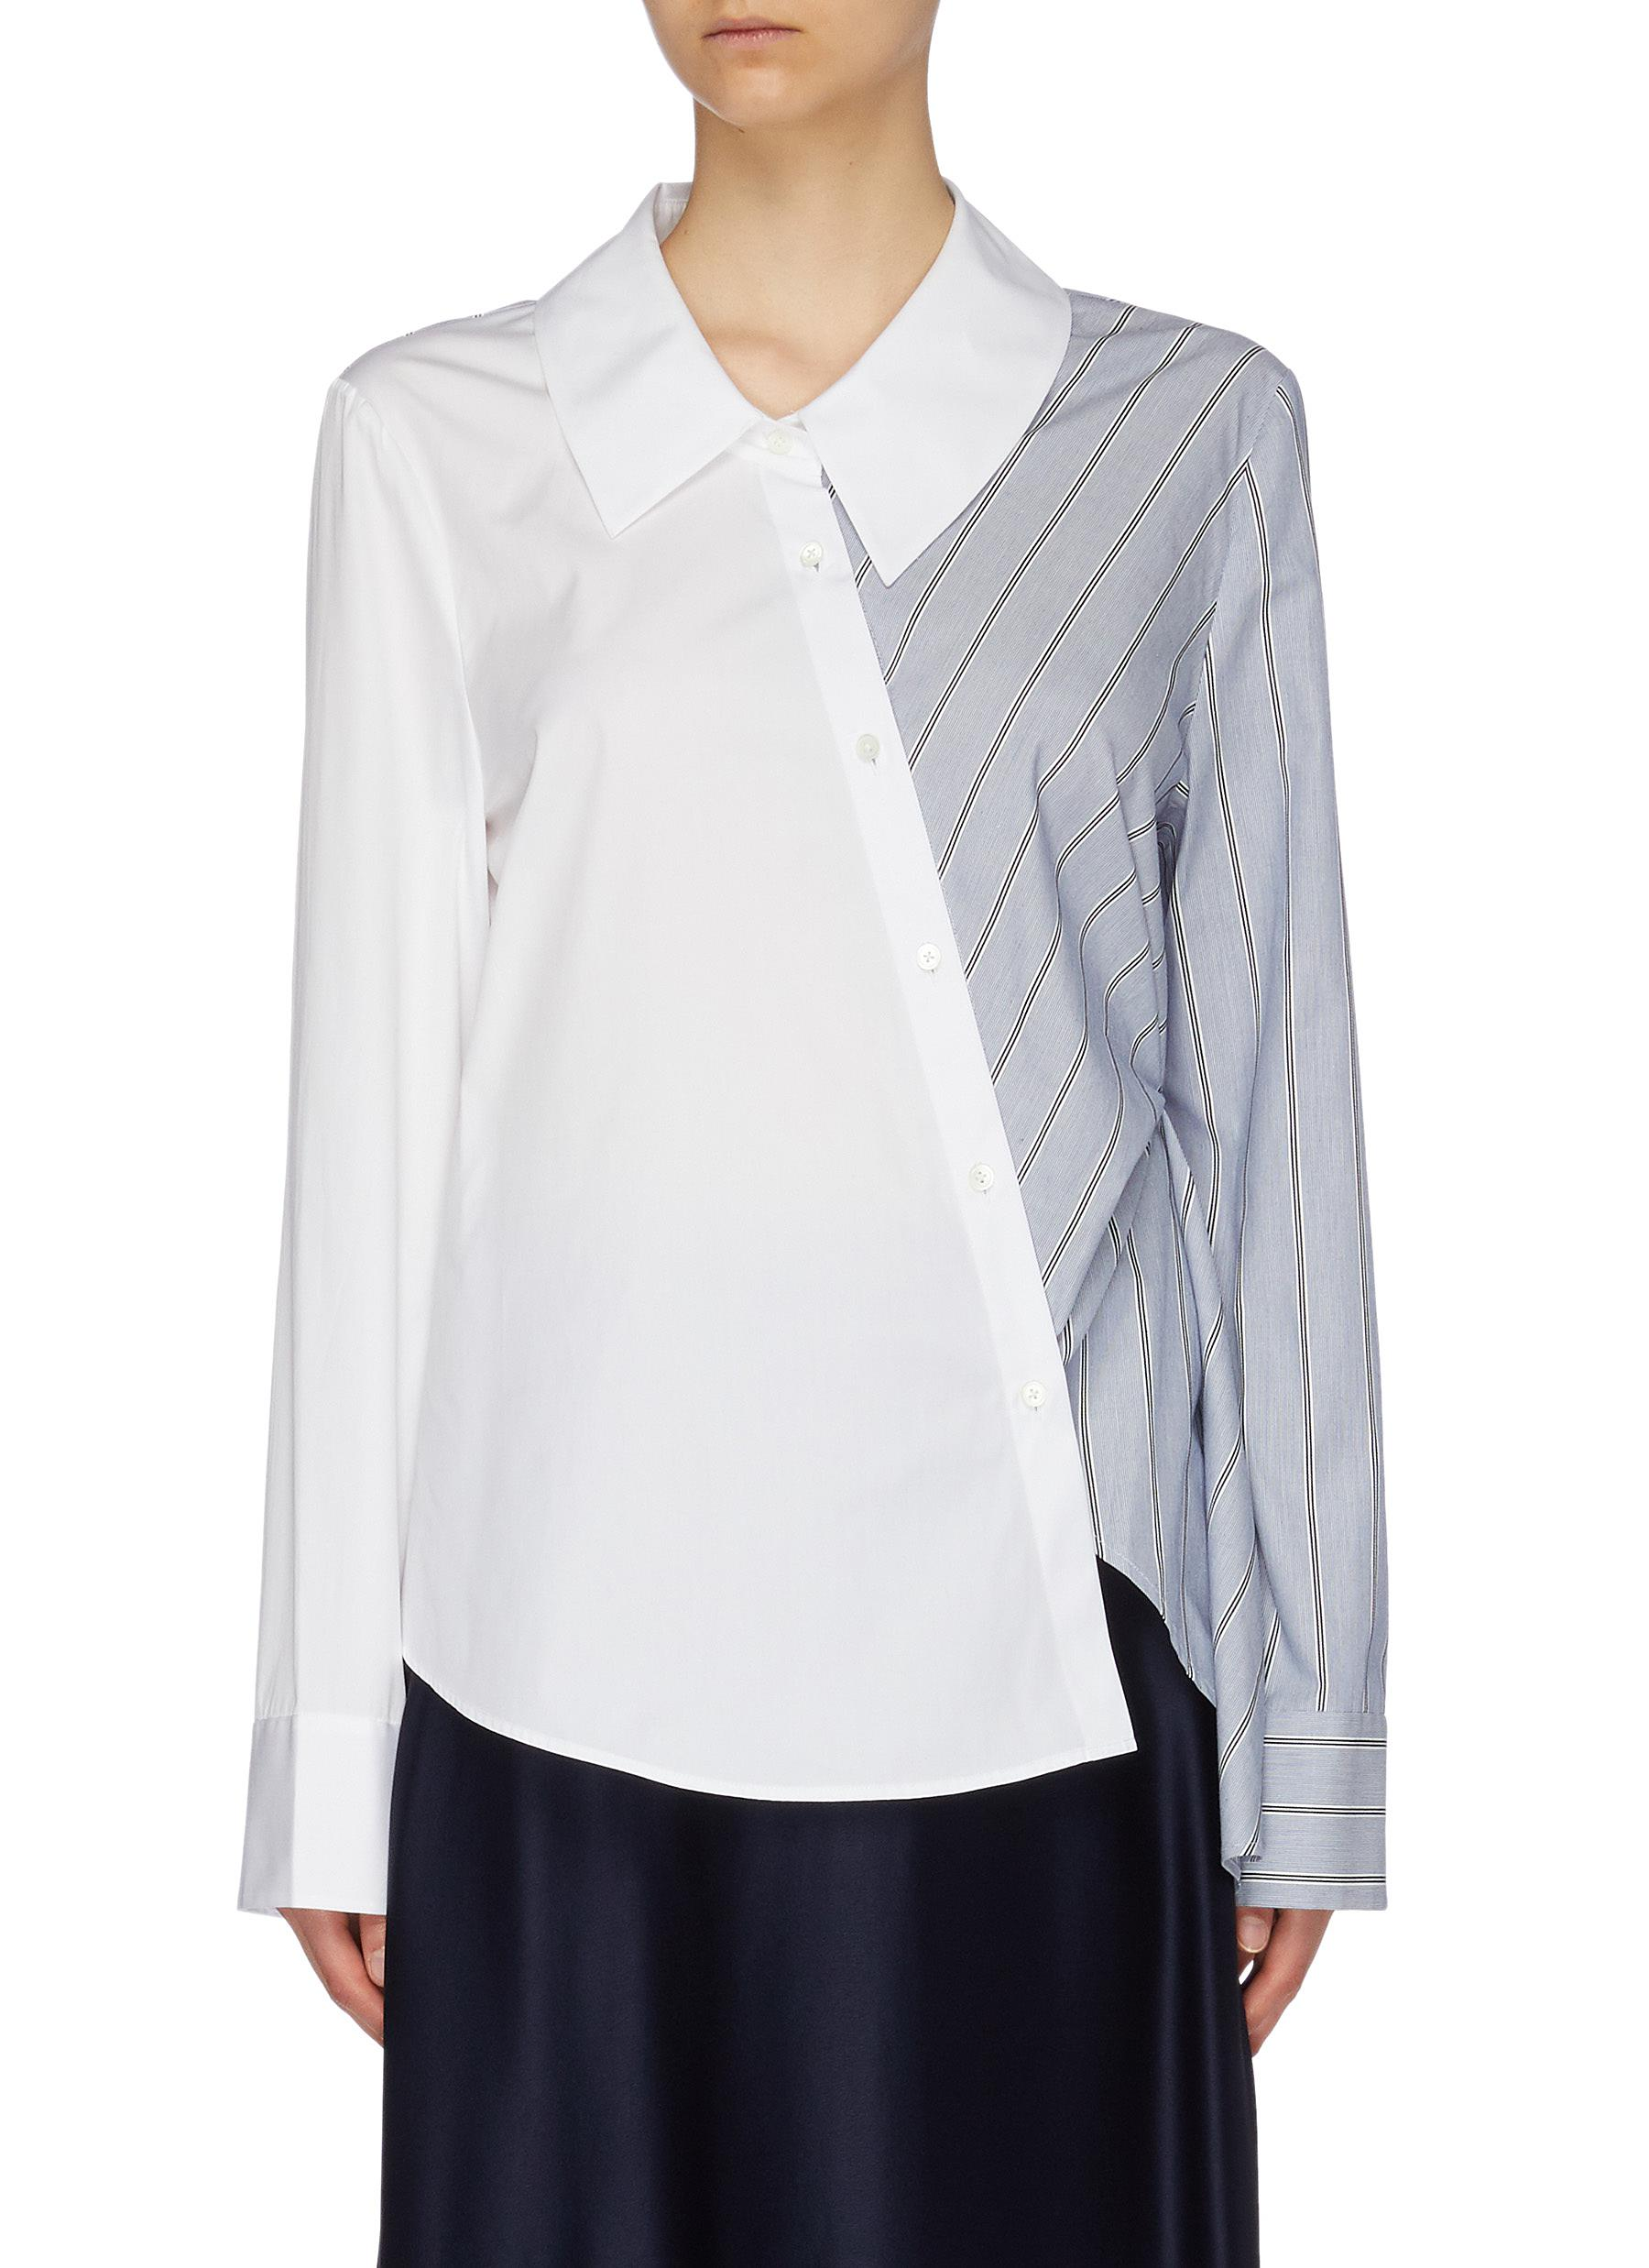 Asymmetric colourblock stripe panel shirt by Portspure